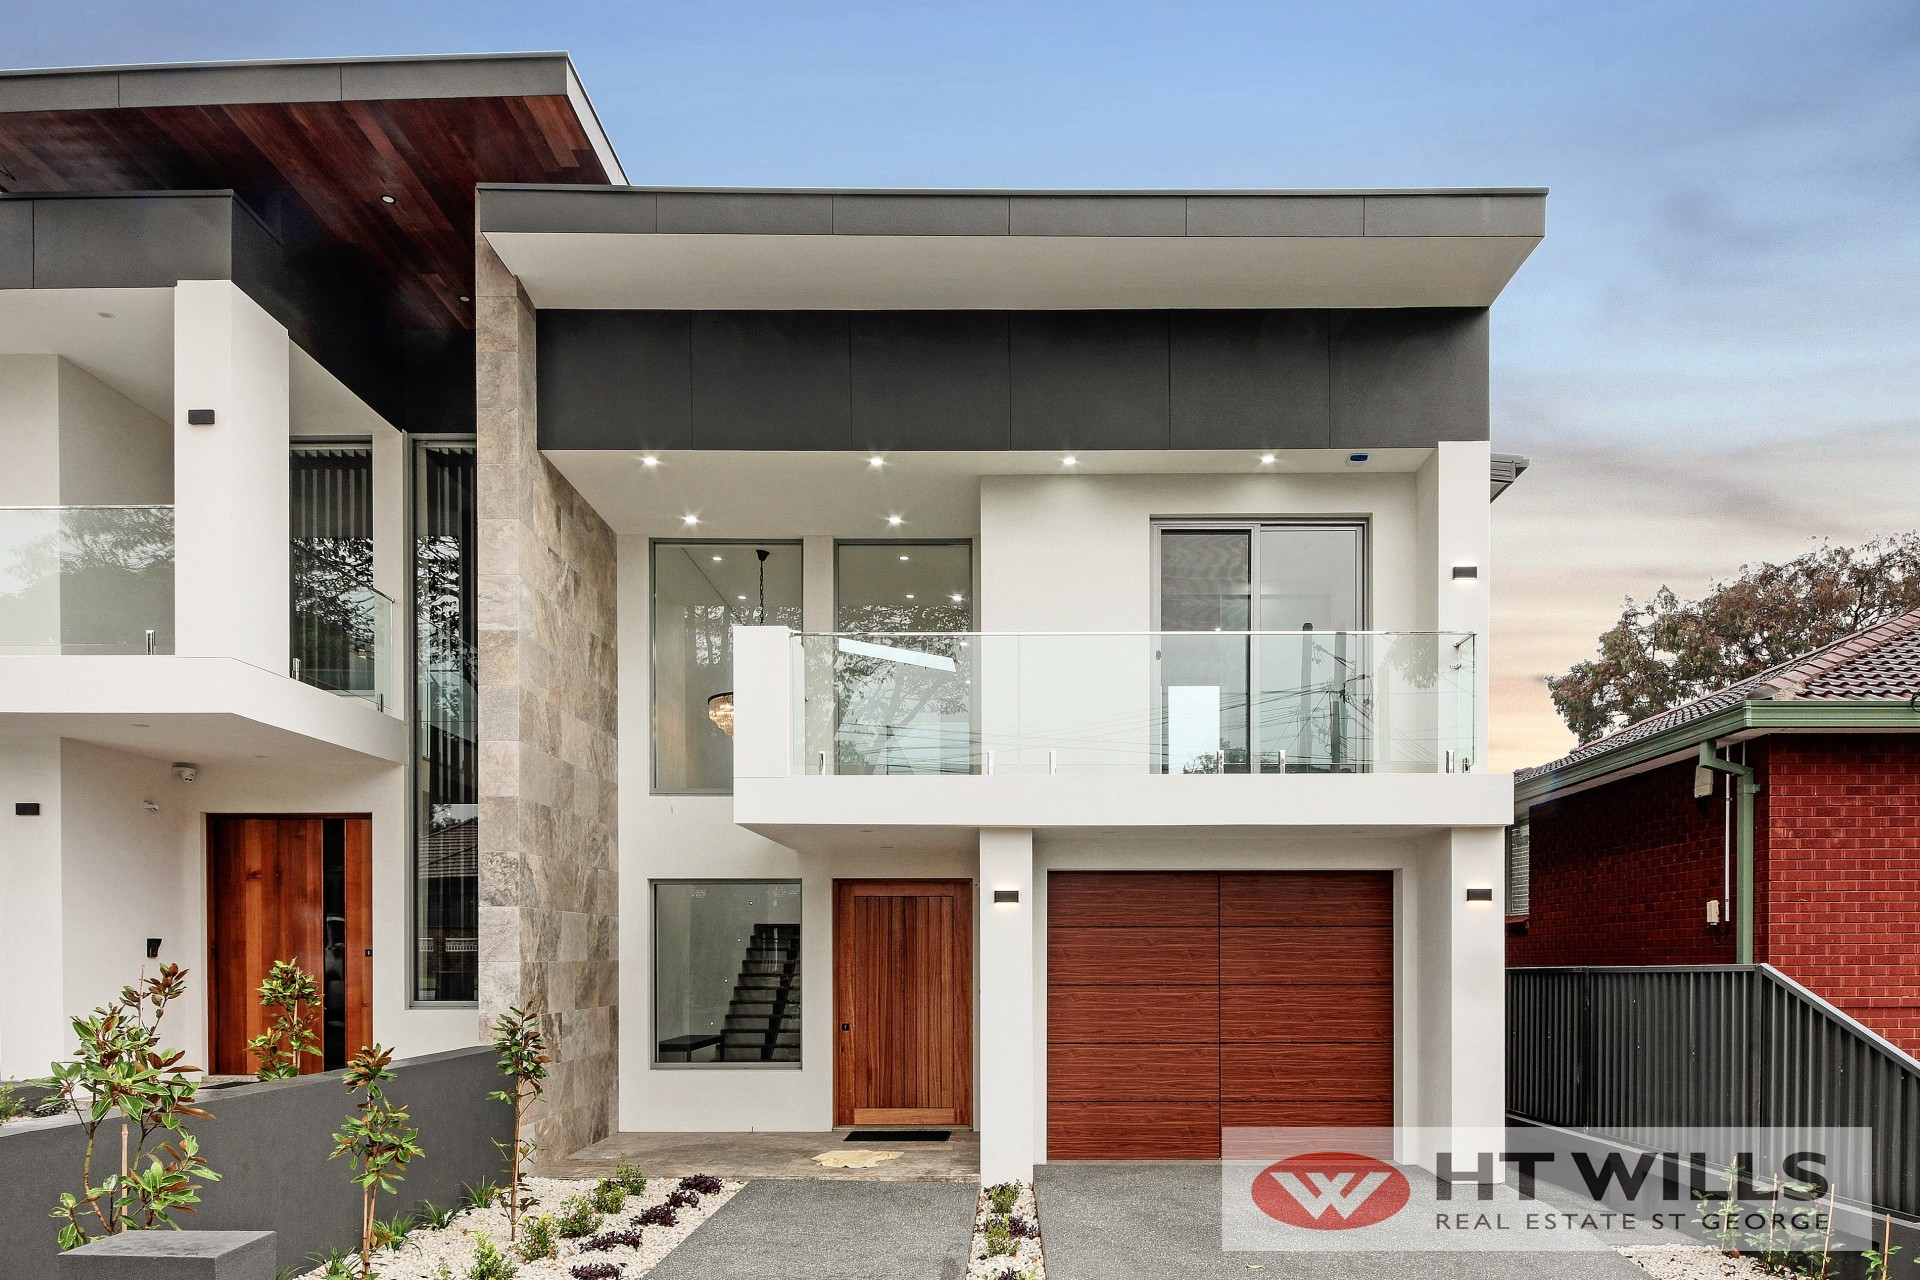 Image: SLEEK CUSTOM DESIGNED HOME IN AN ULTRA CONVENIENT LOCATION